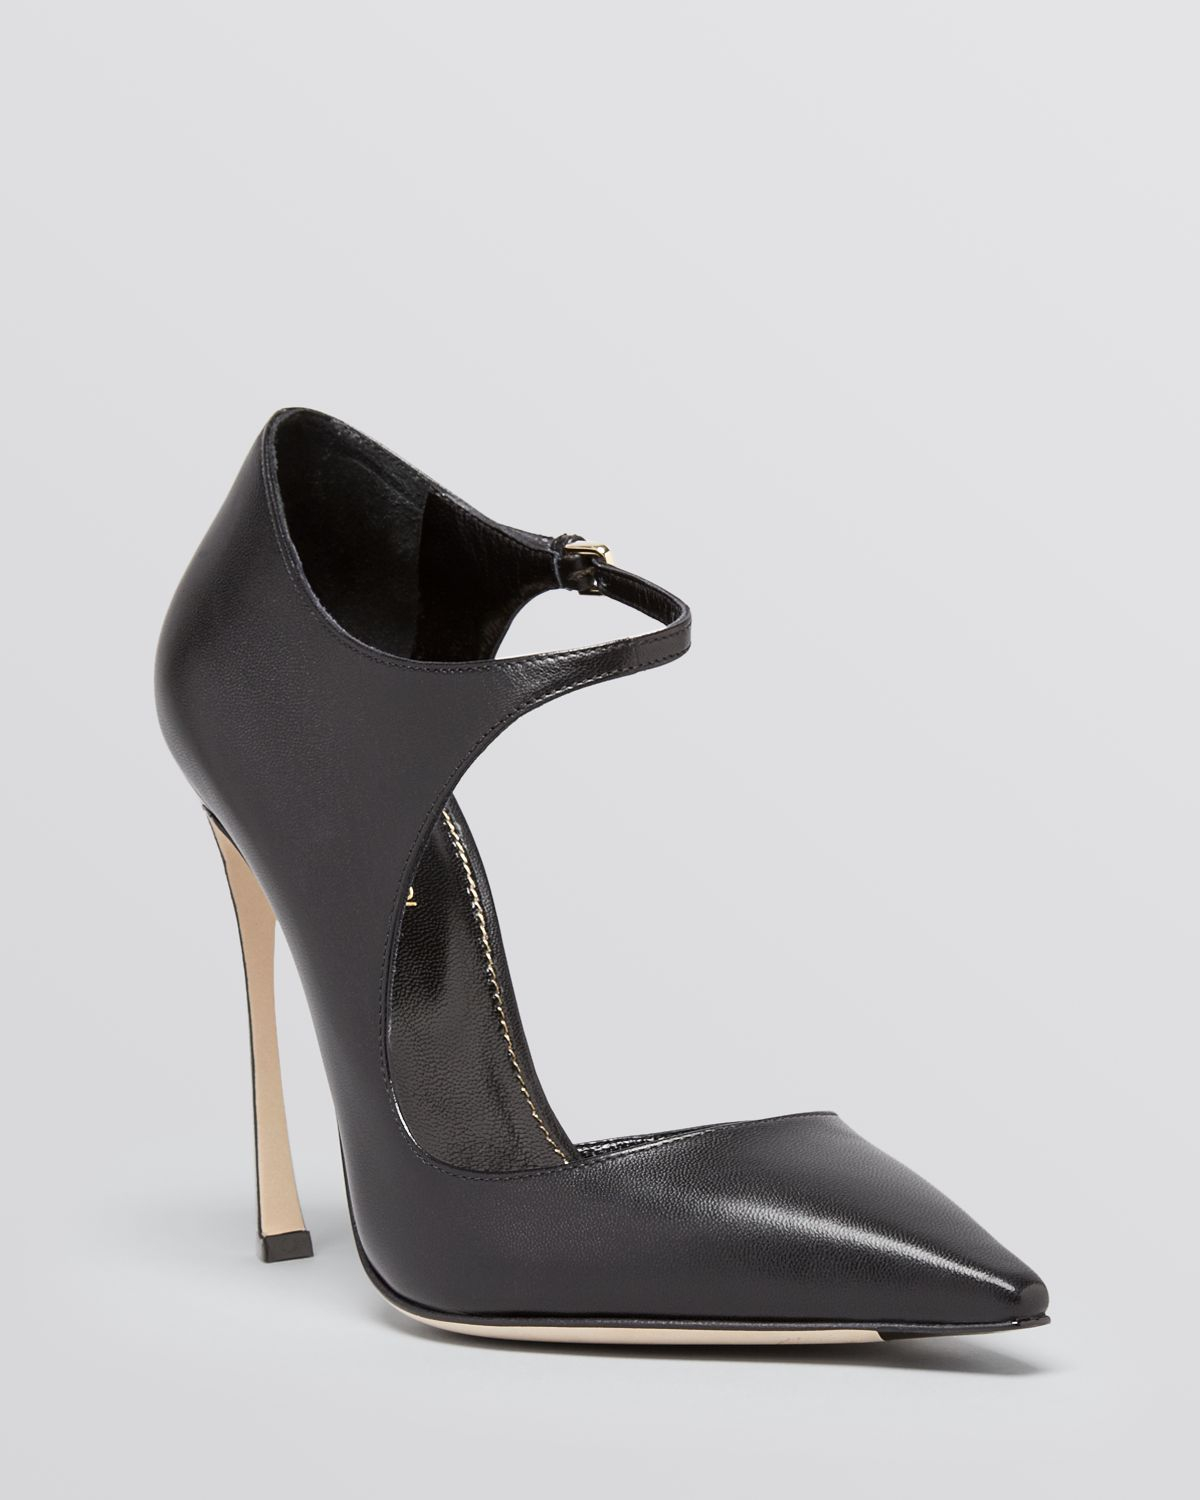 Sergio Rossi Suede Mary Jane Pumps discount for nice cheap sale outlet store wiki online pictures for sale fBhdG